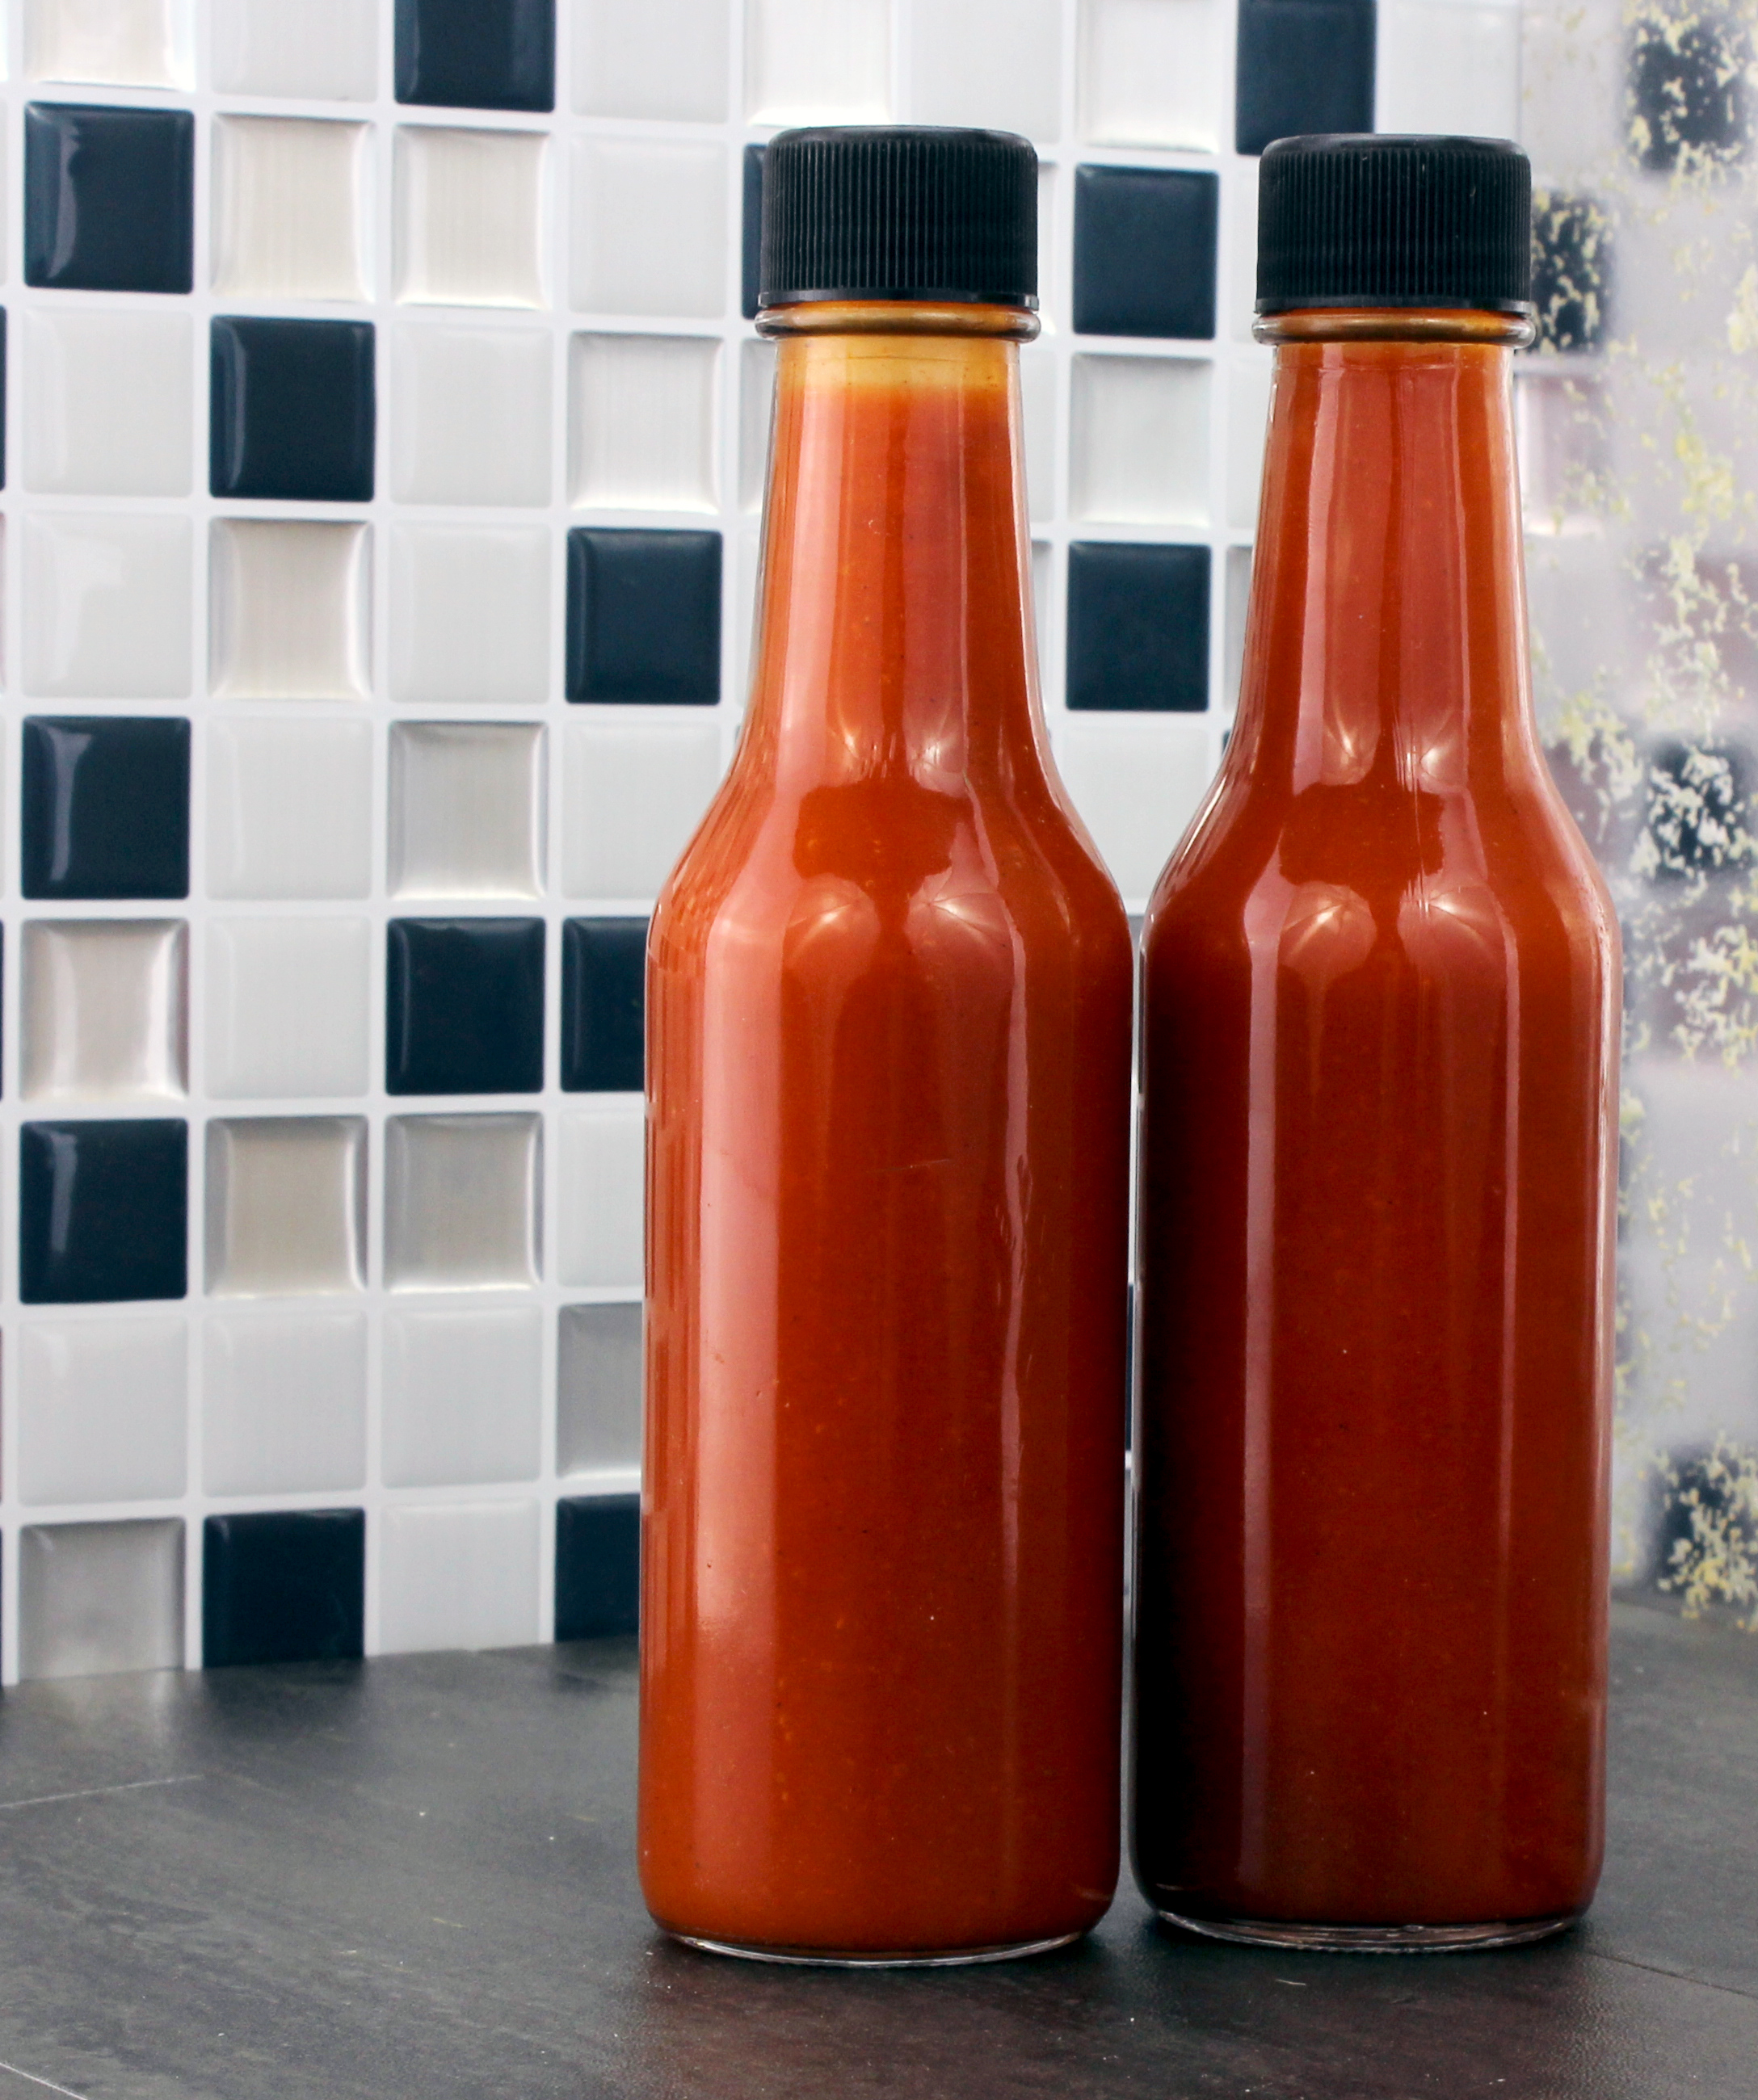 B016LPPR4Q - 5oz Empty Hot Sauce Woozy Bottles (12 Complete Bottles) In use